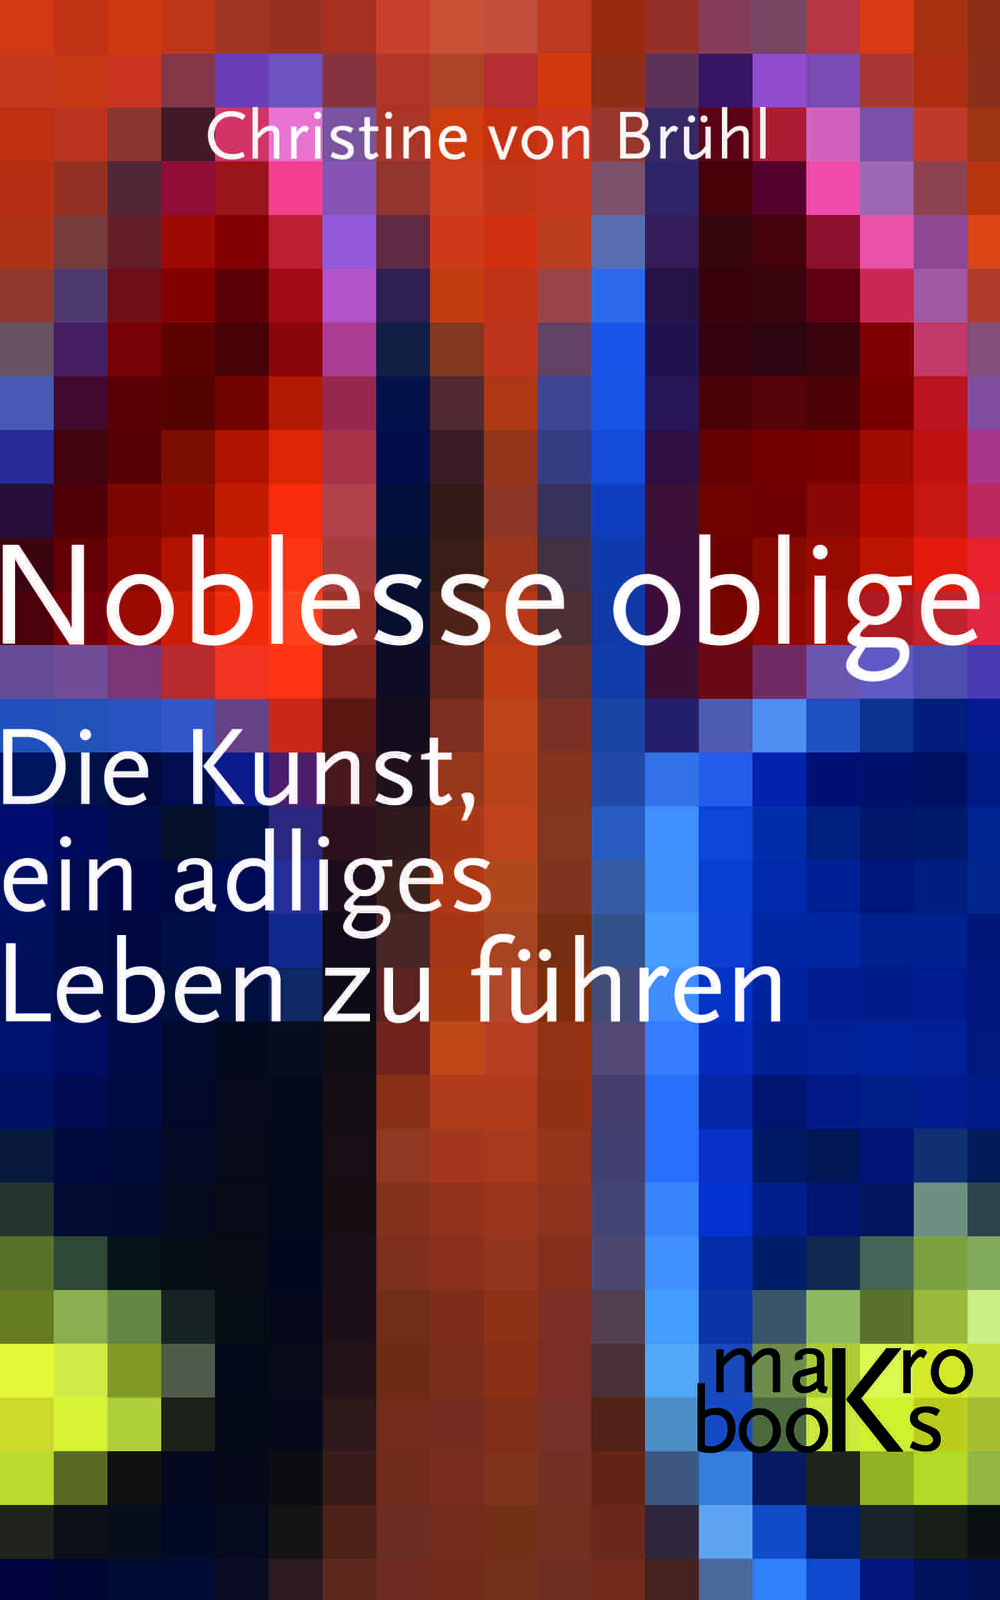 http://www.ebook.de/de/product/24141788/christine_bruehl_noblesse_oblige.html?searchId=275415837